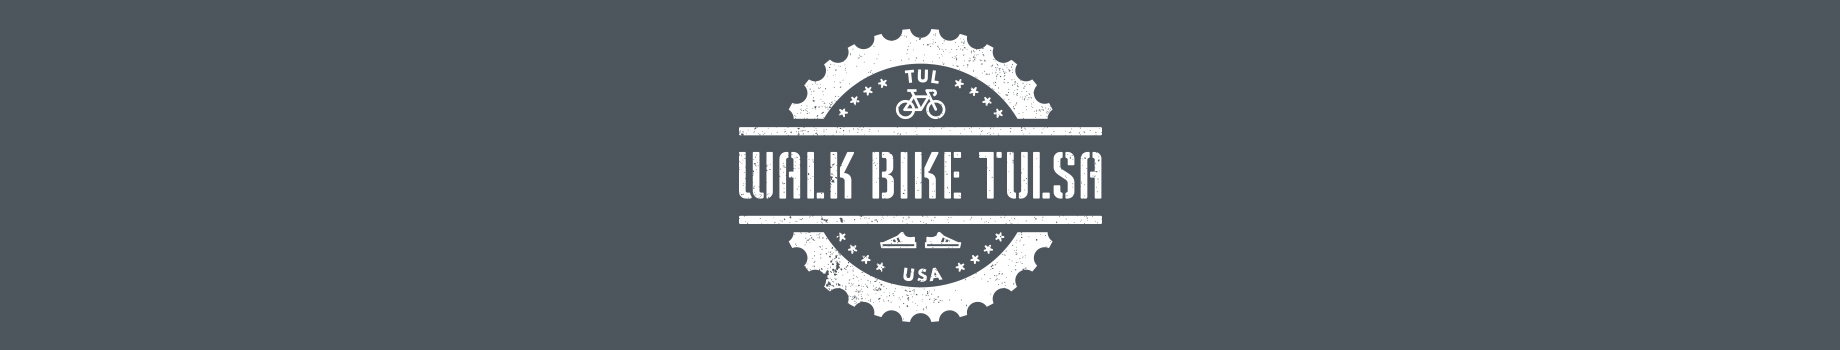 Walk Bike Tulsa Header